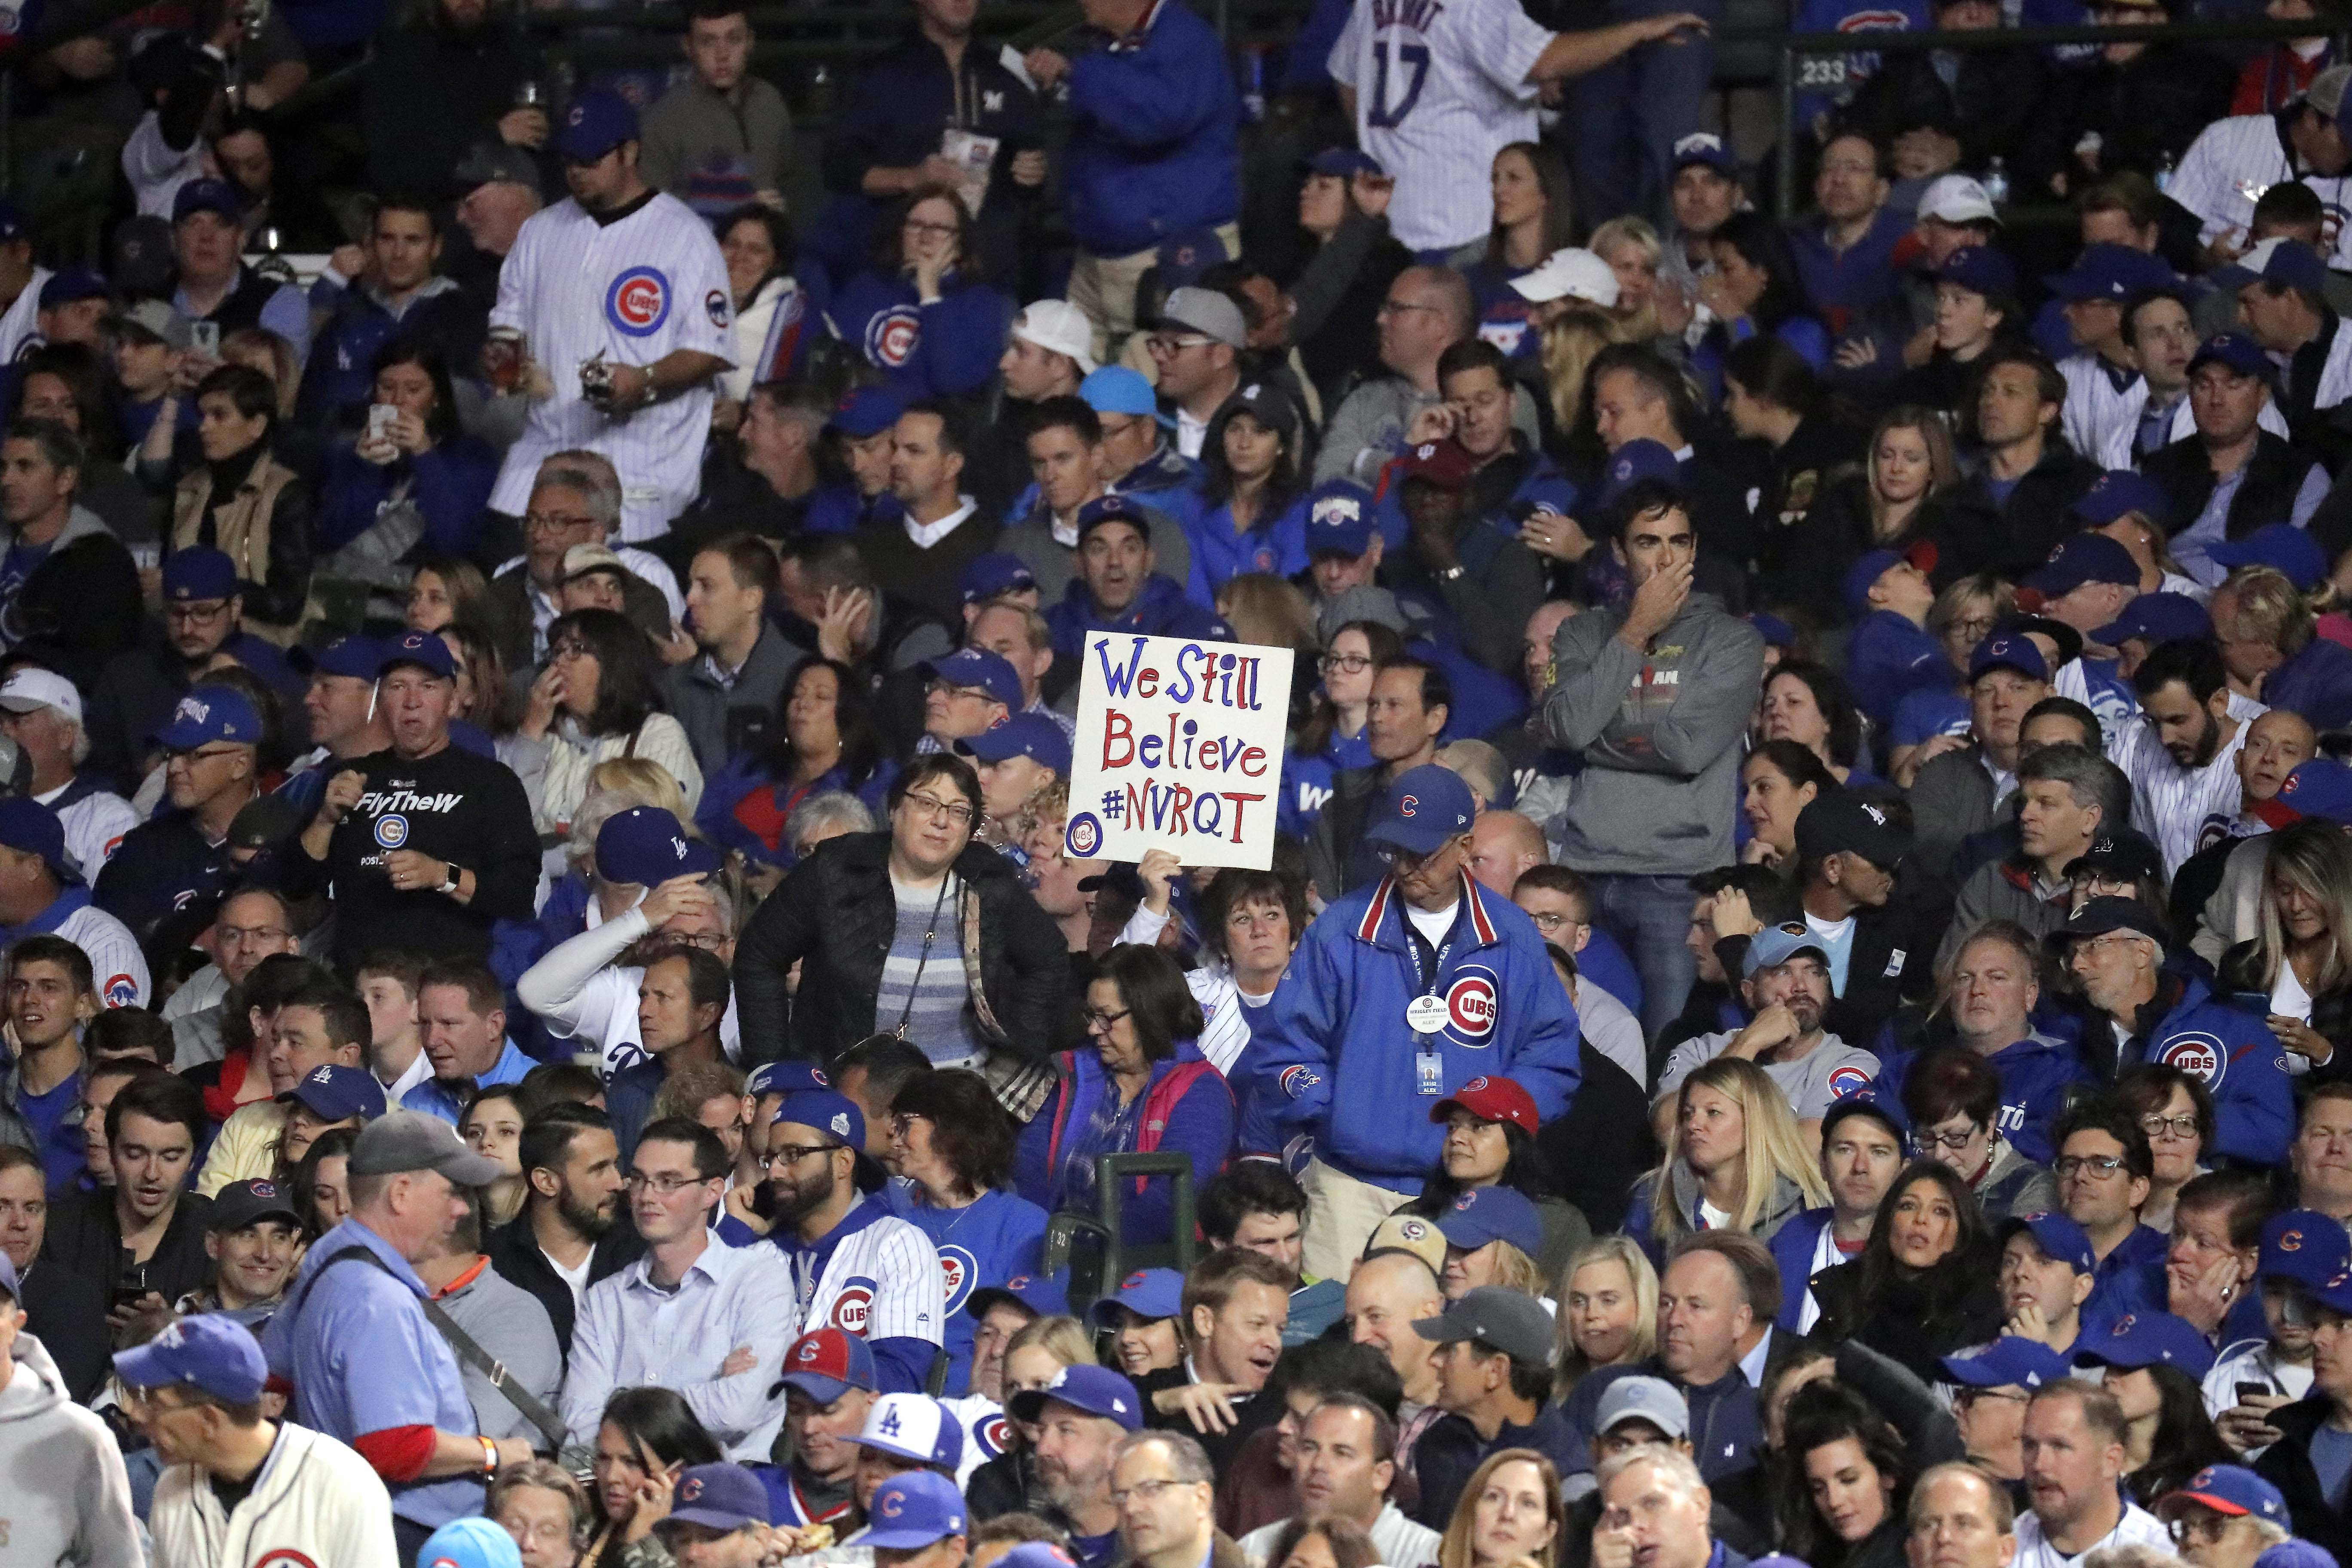 There was no joy in Wrigleyville for Chicago Cubs fans Thursday night as the Los Angeles Dodgers beat the Cubs 11-1 in Game 5 of the National League championship series to end the Cubs' dreams of a World Series repeat.